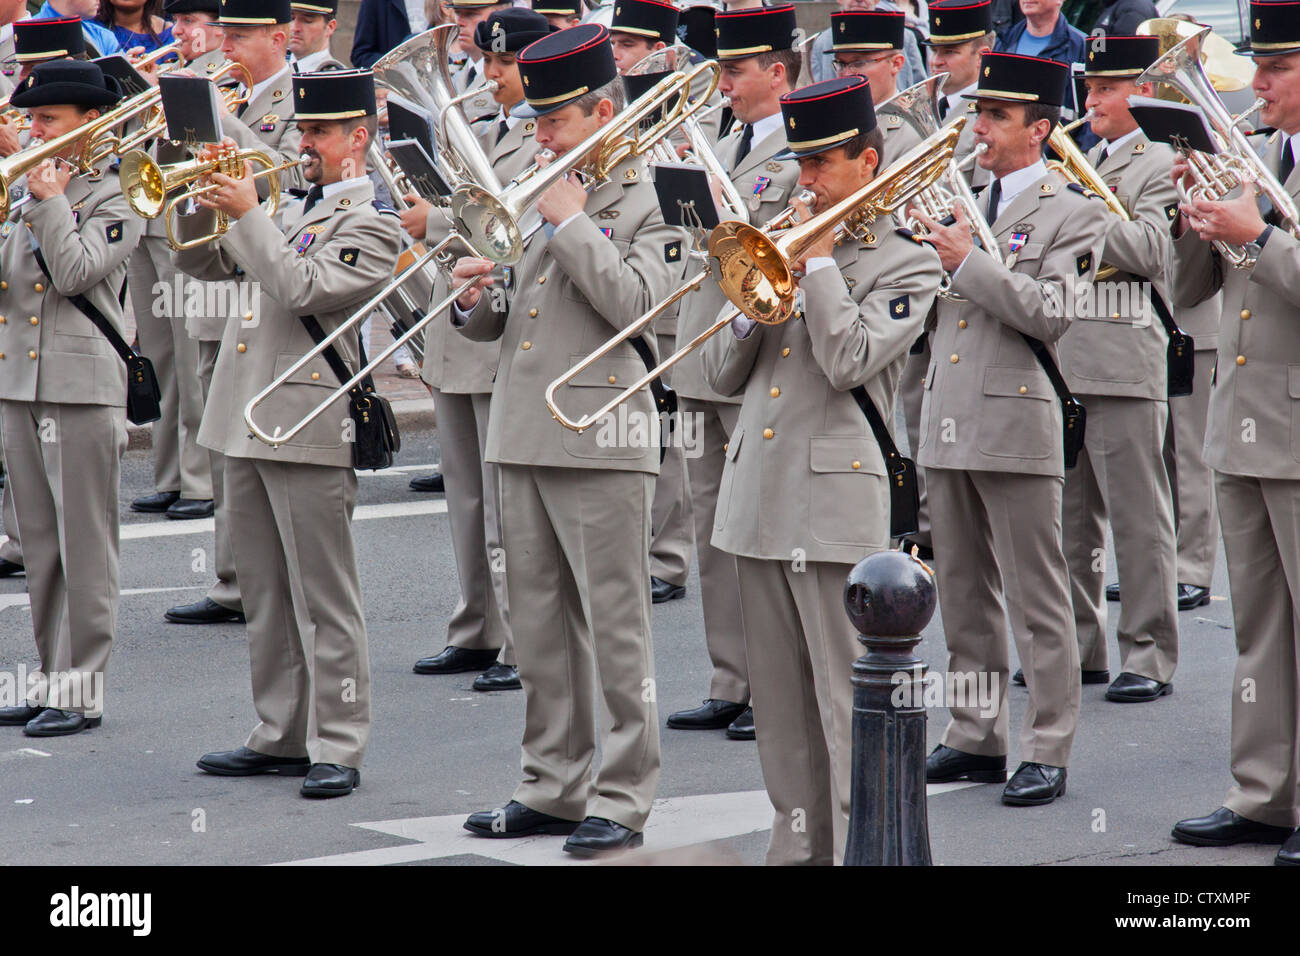 A French military band playing during Bastille Day celebrations in Lille - Stock Image